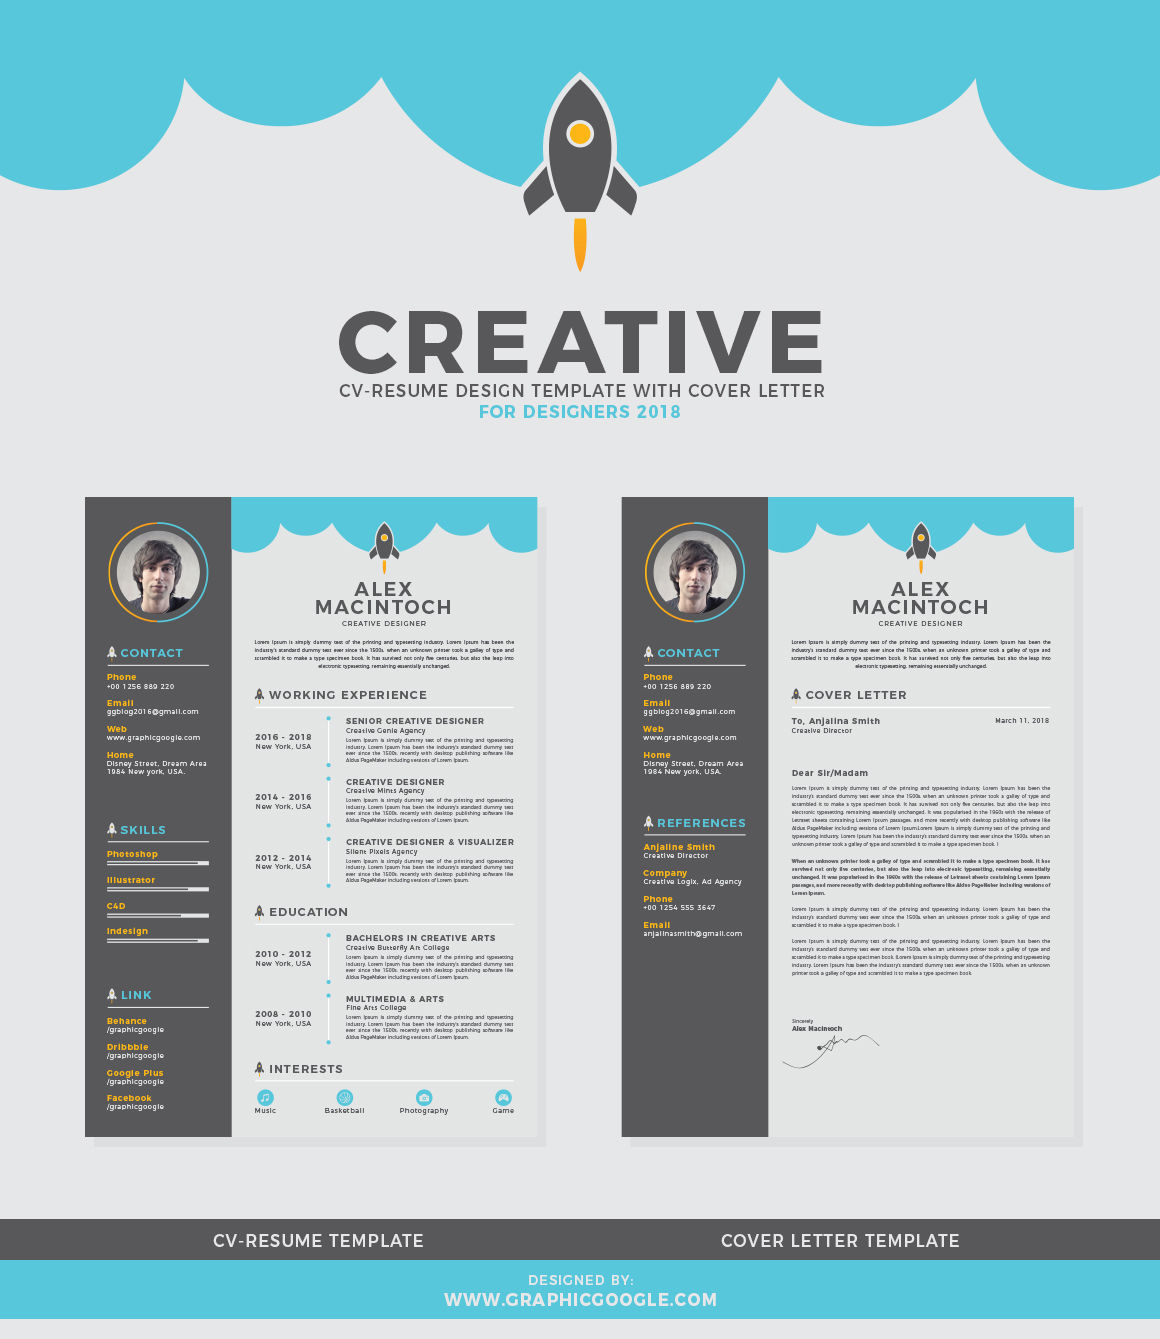 Free Creative CV-Resume Design Template With Cover Letter For ...